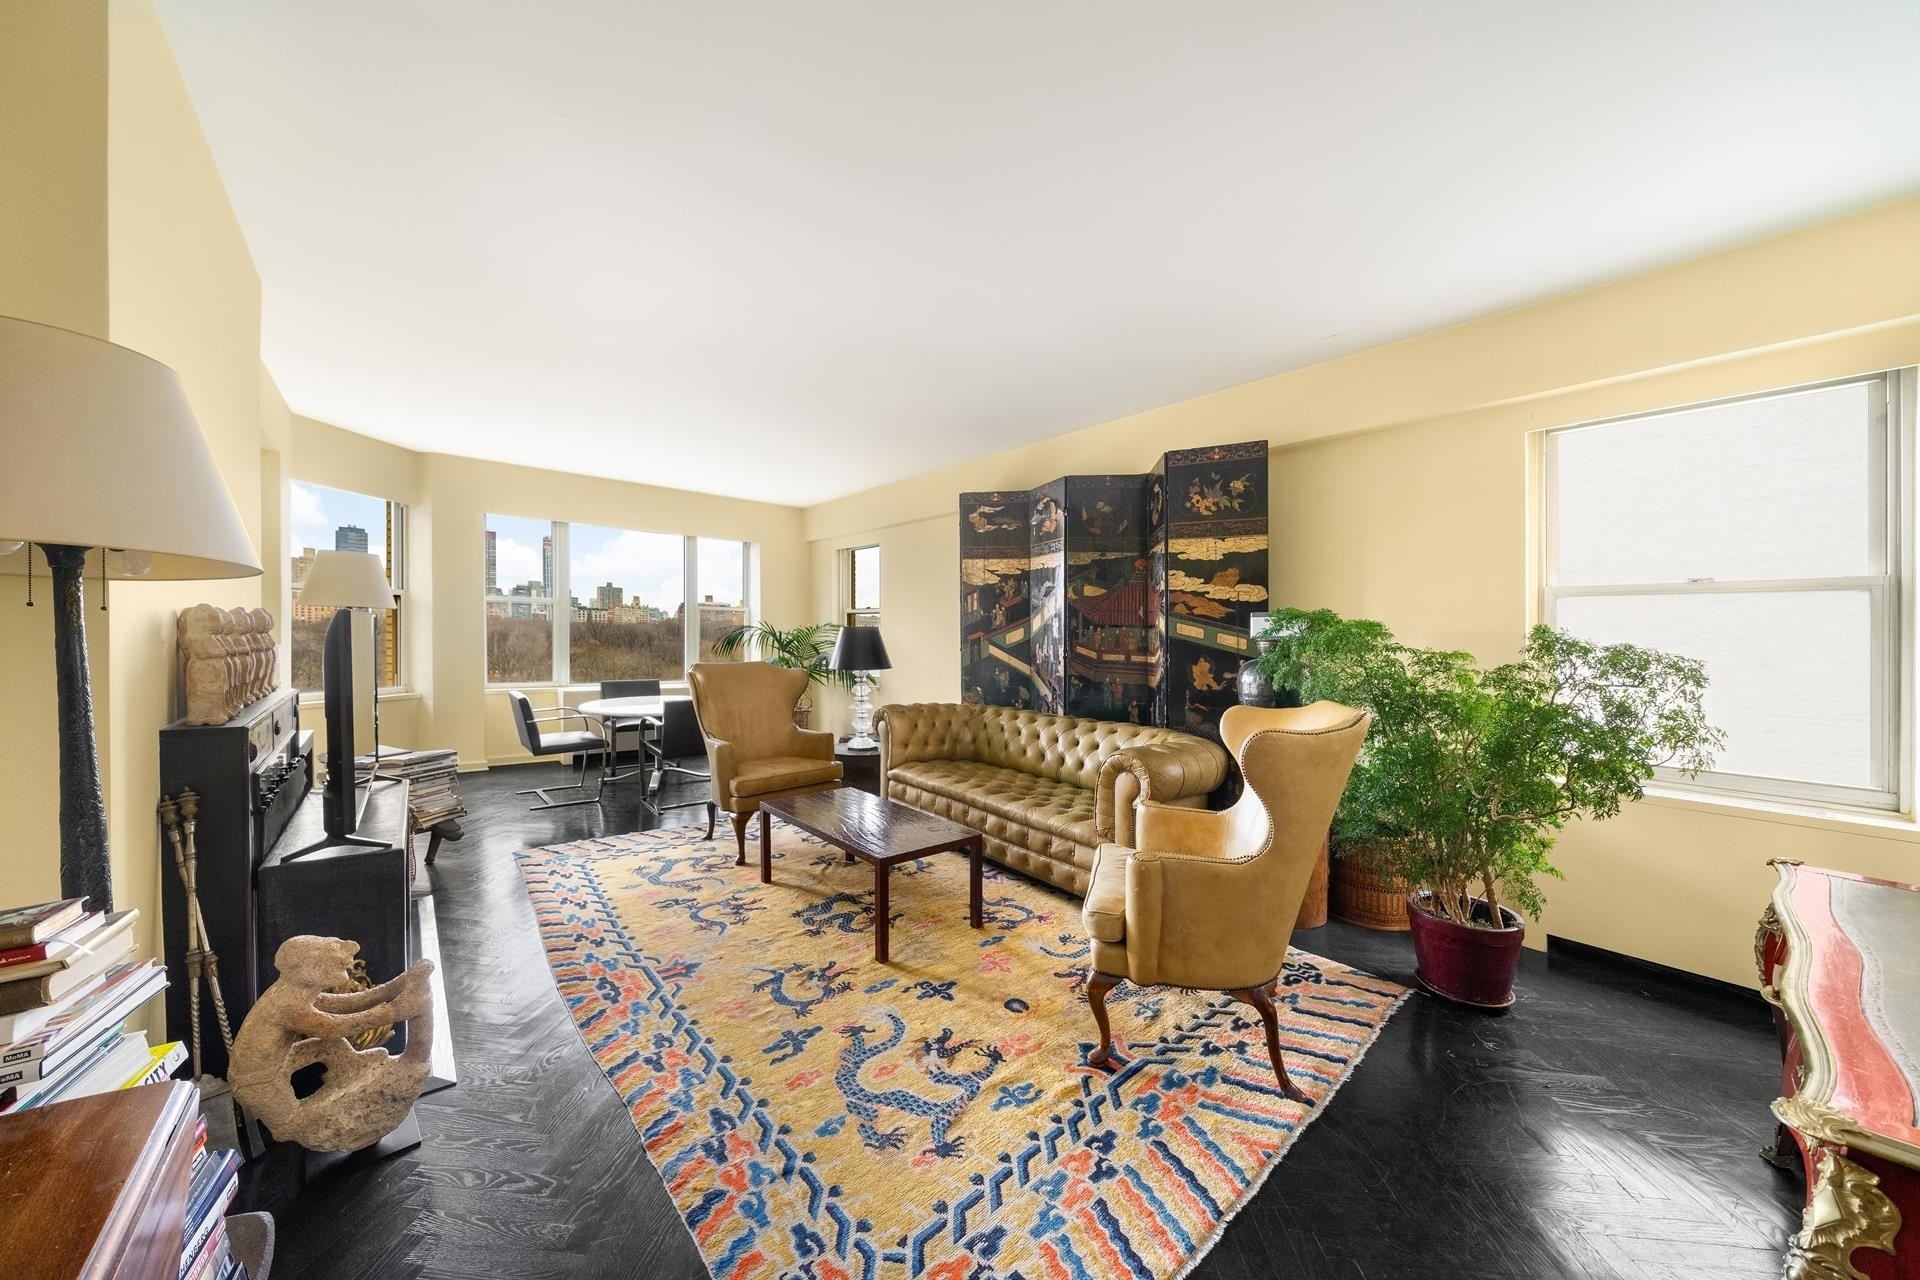 Property en 1 East 66th Street Corp., 1 East 66th St, 11A Lenox Hill, New York, NY 10021